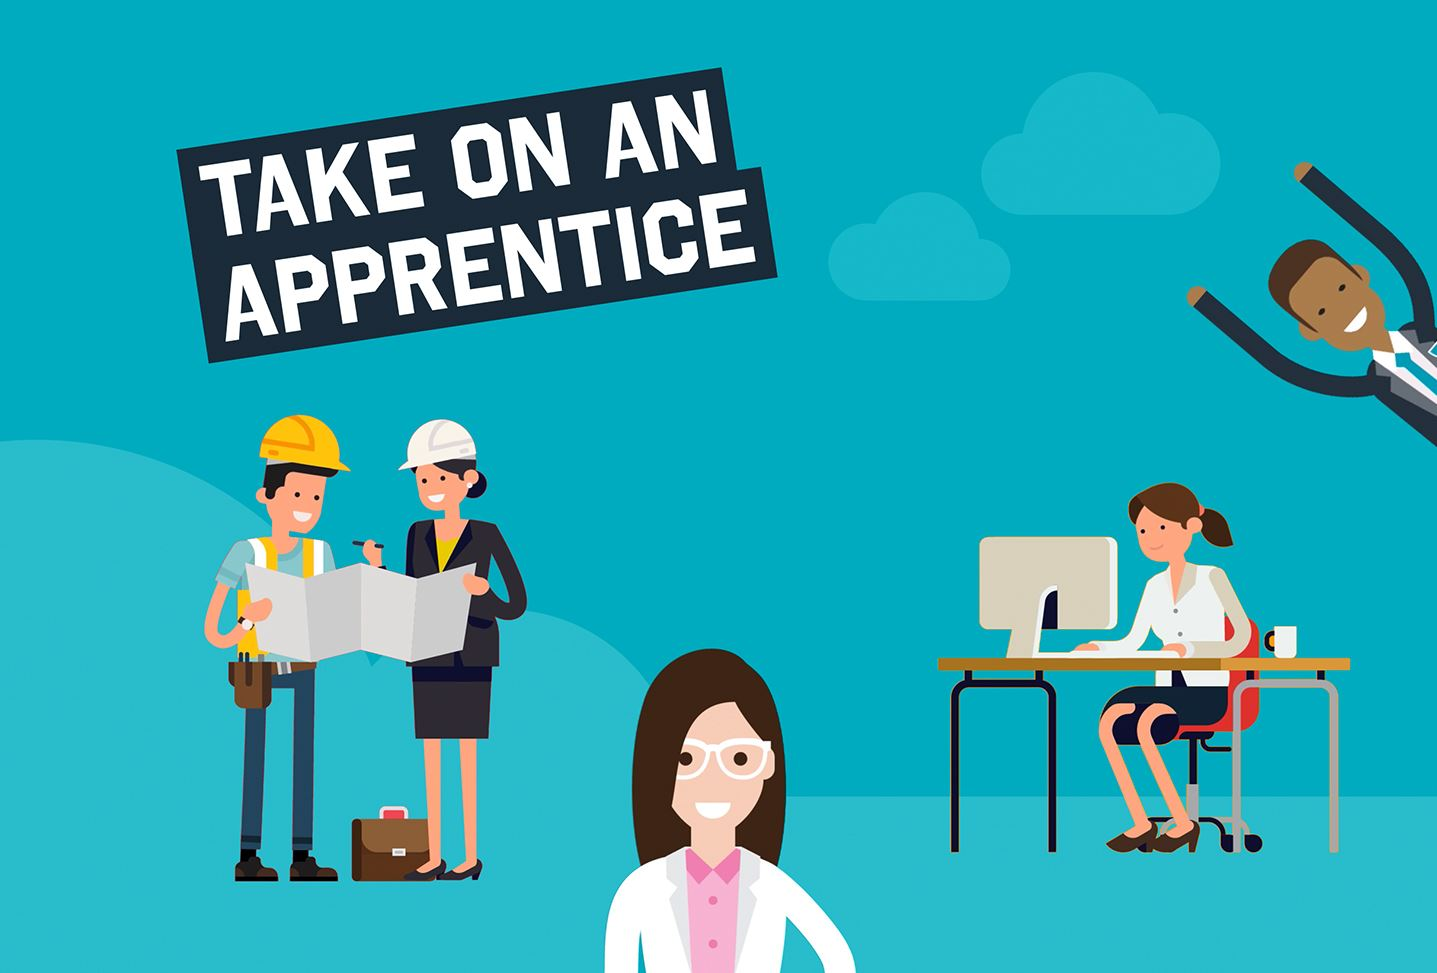 Animated video about taking on an apprentice